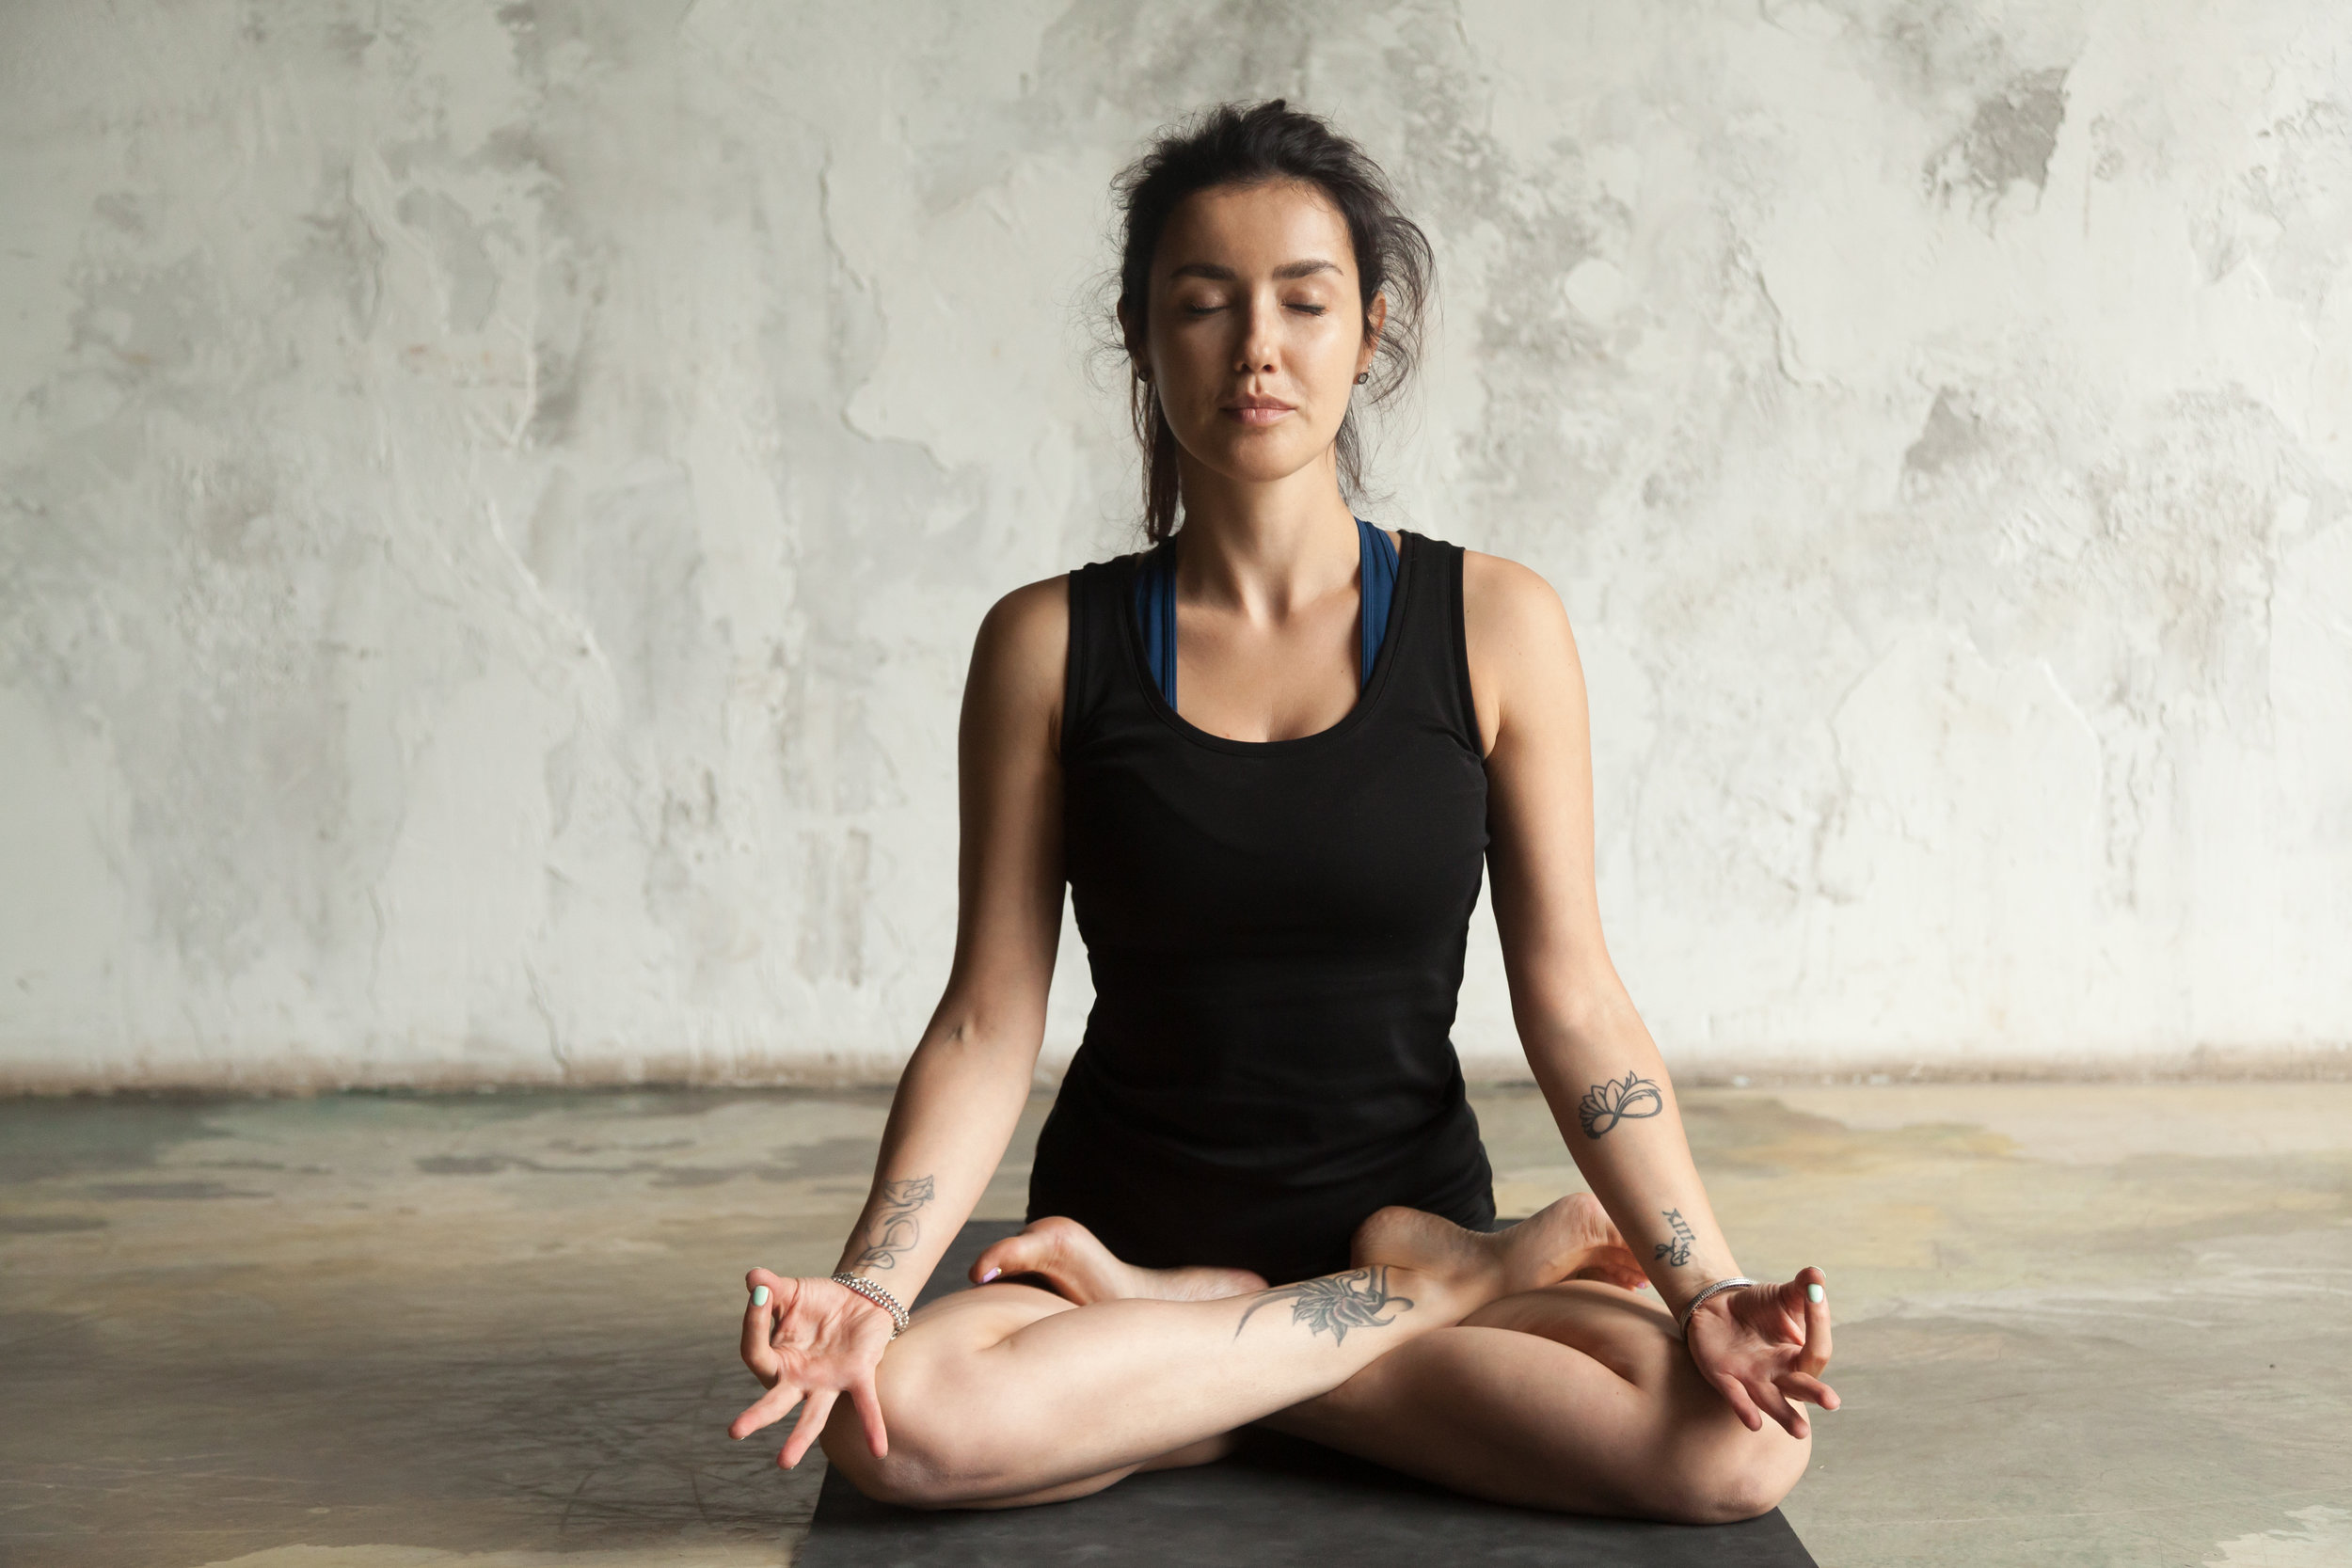 mindful meditation - Learn how to bring more mindfulness to your daily life…how to respond instead of react. It can happen. I can help.